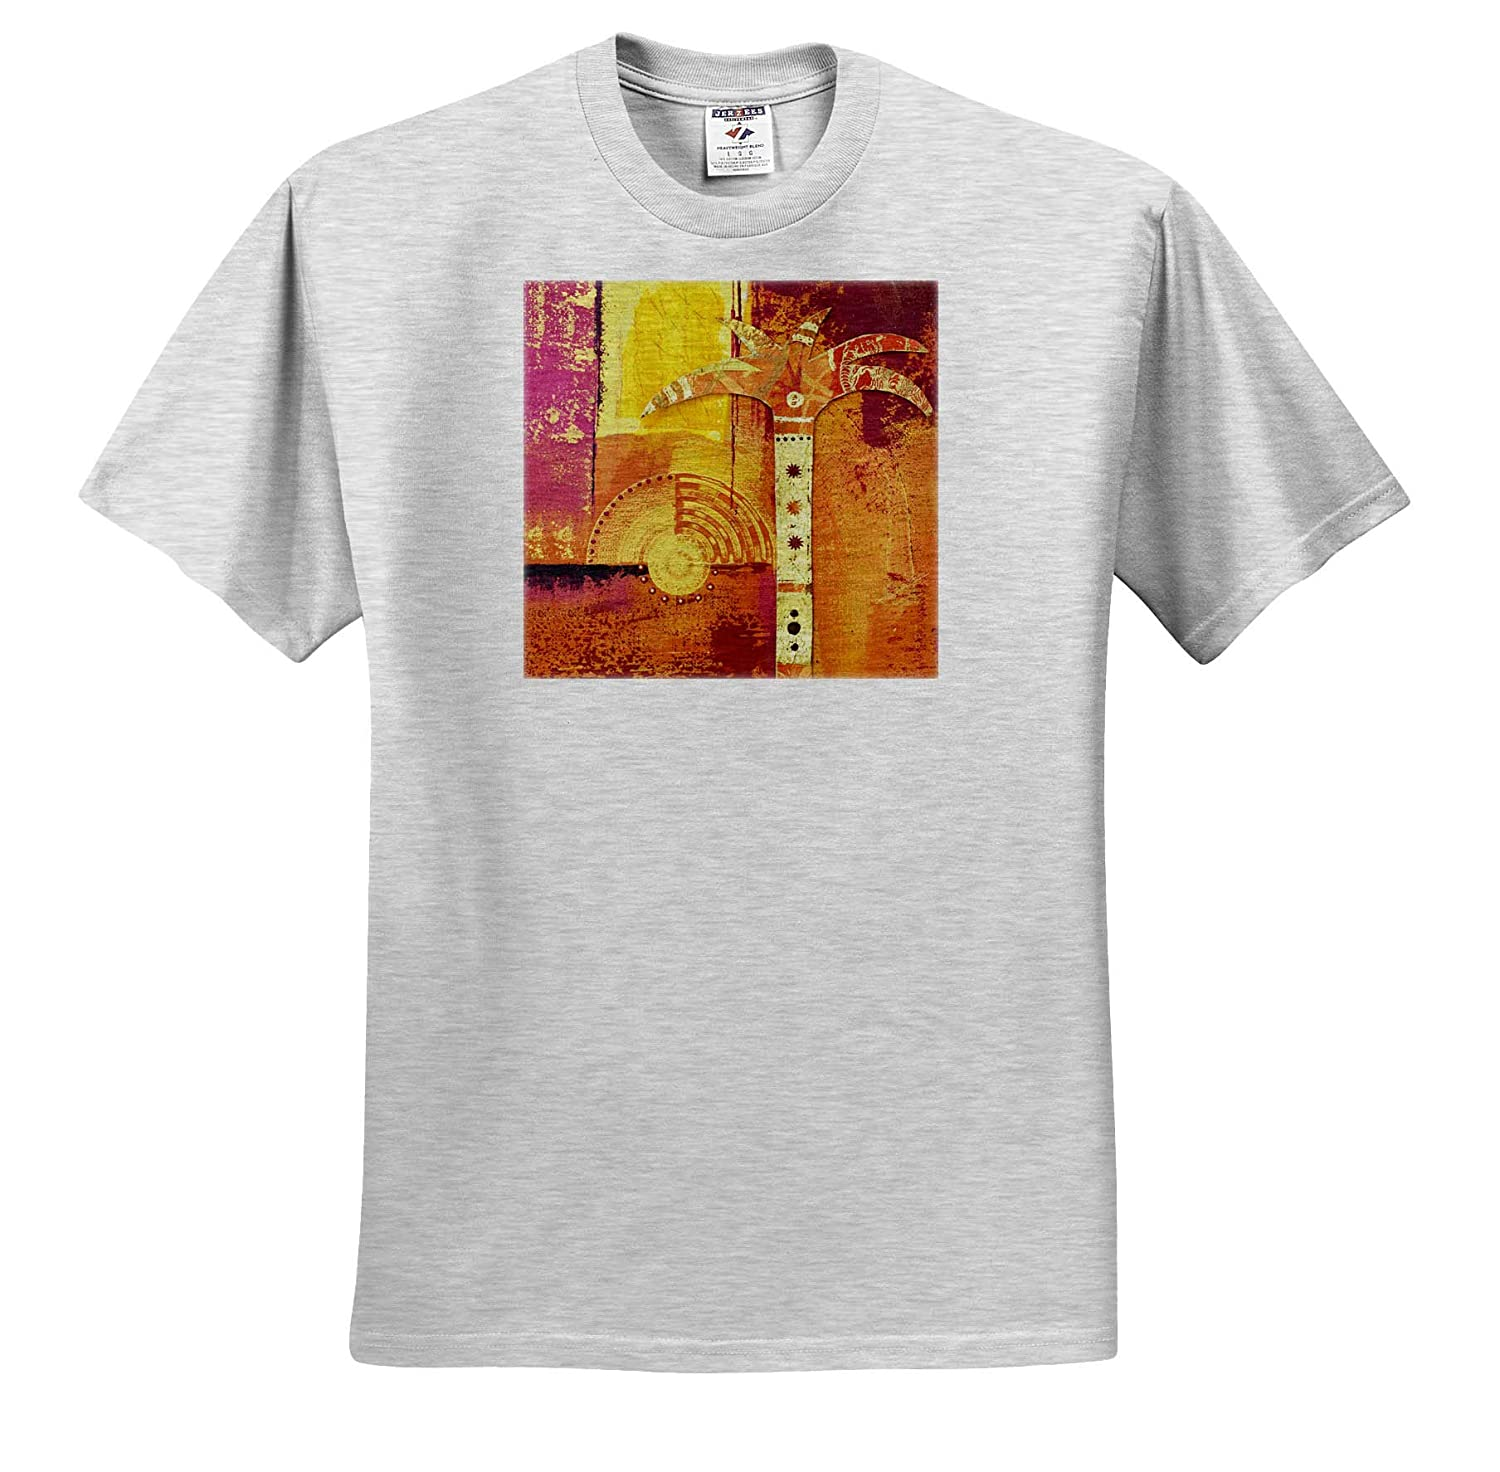 Mixed Media Collage Art Painting with Hand Symbol 3dRose Andrea Haase Art Illustration T-Shirts